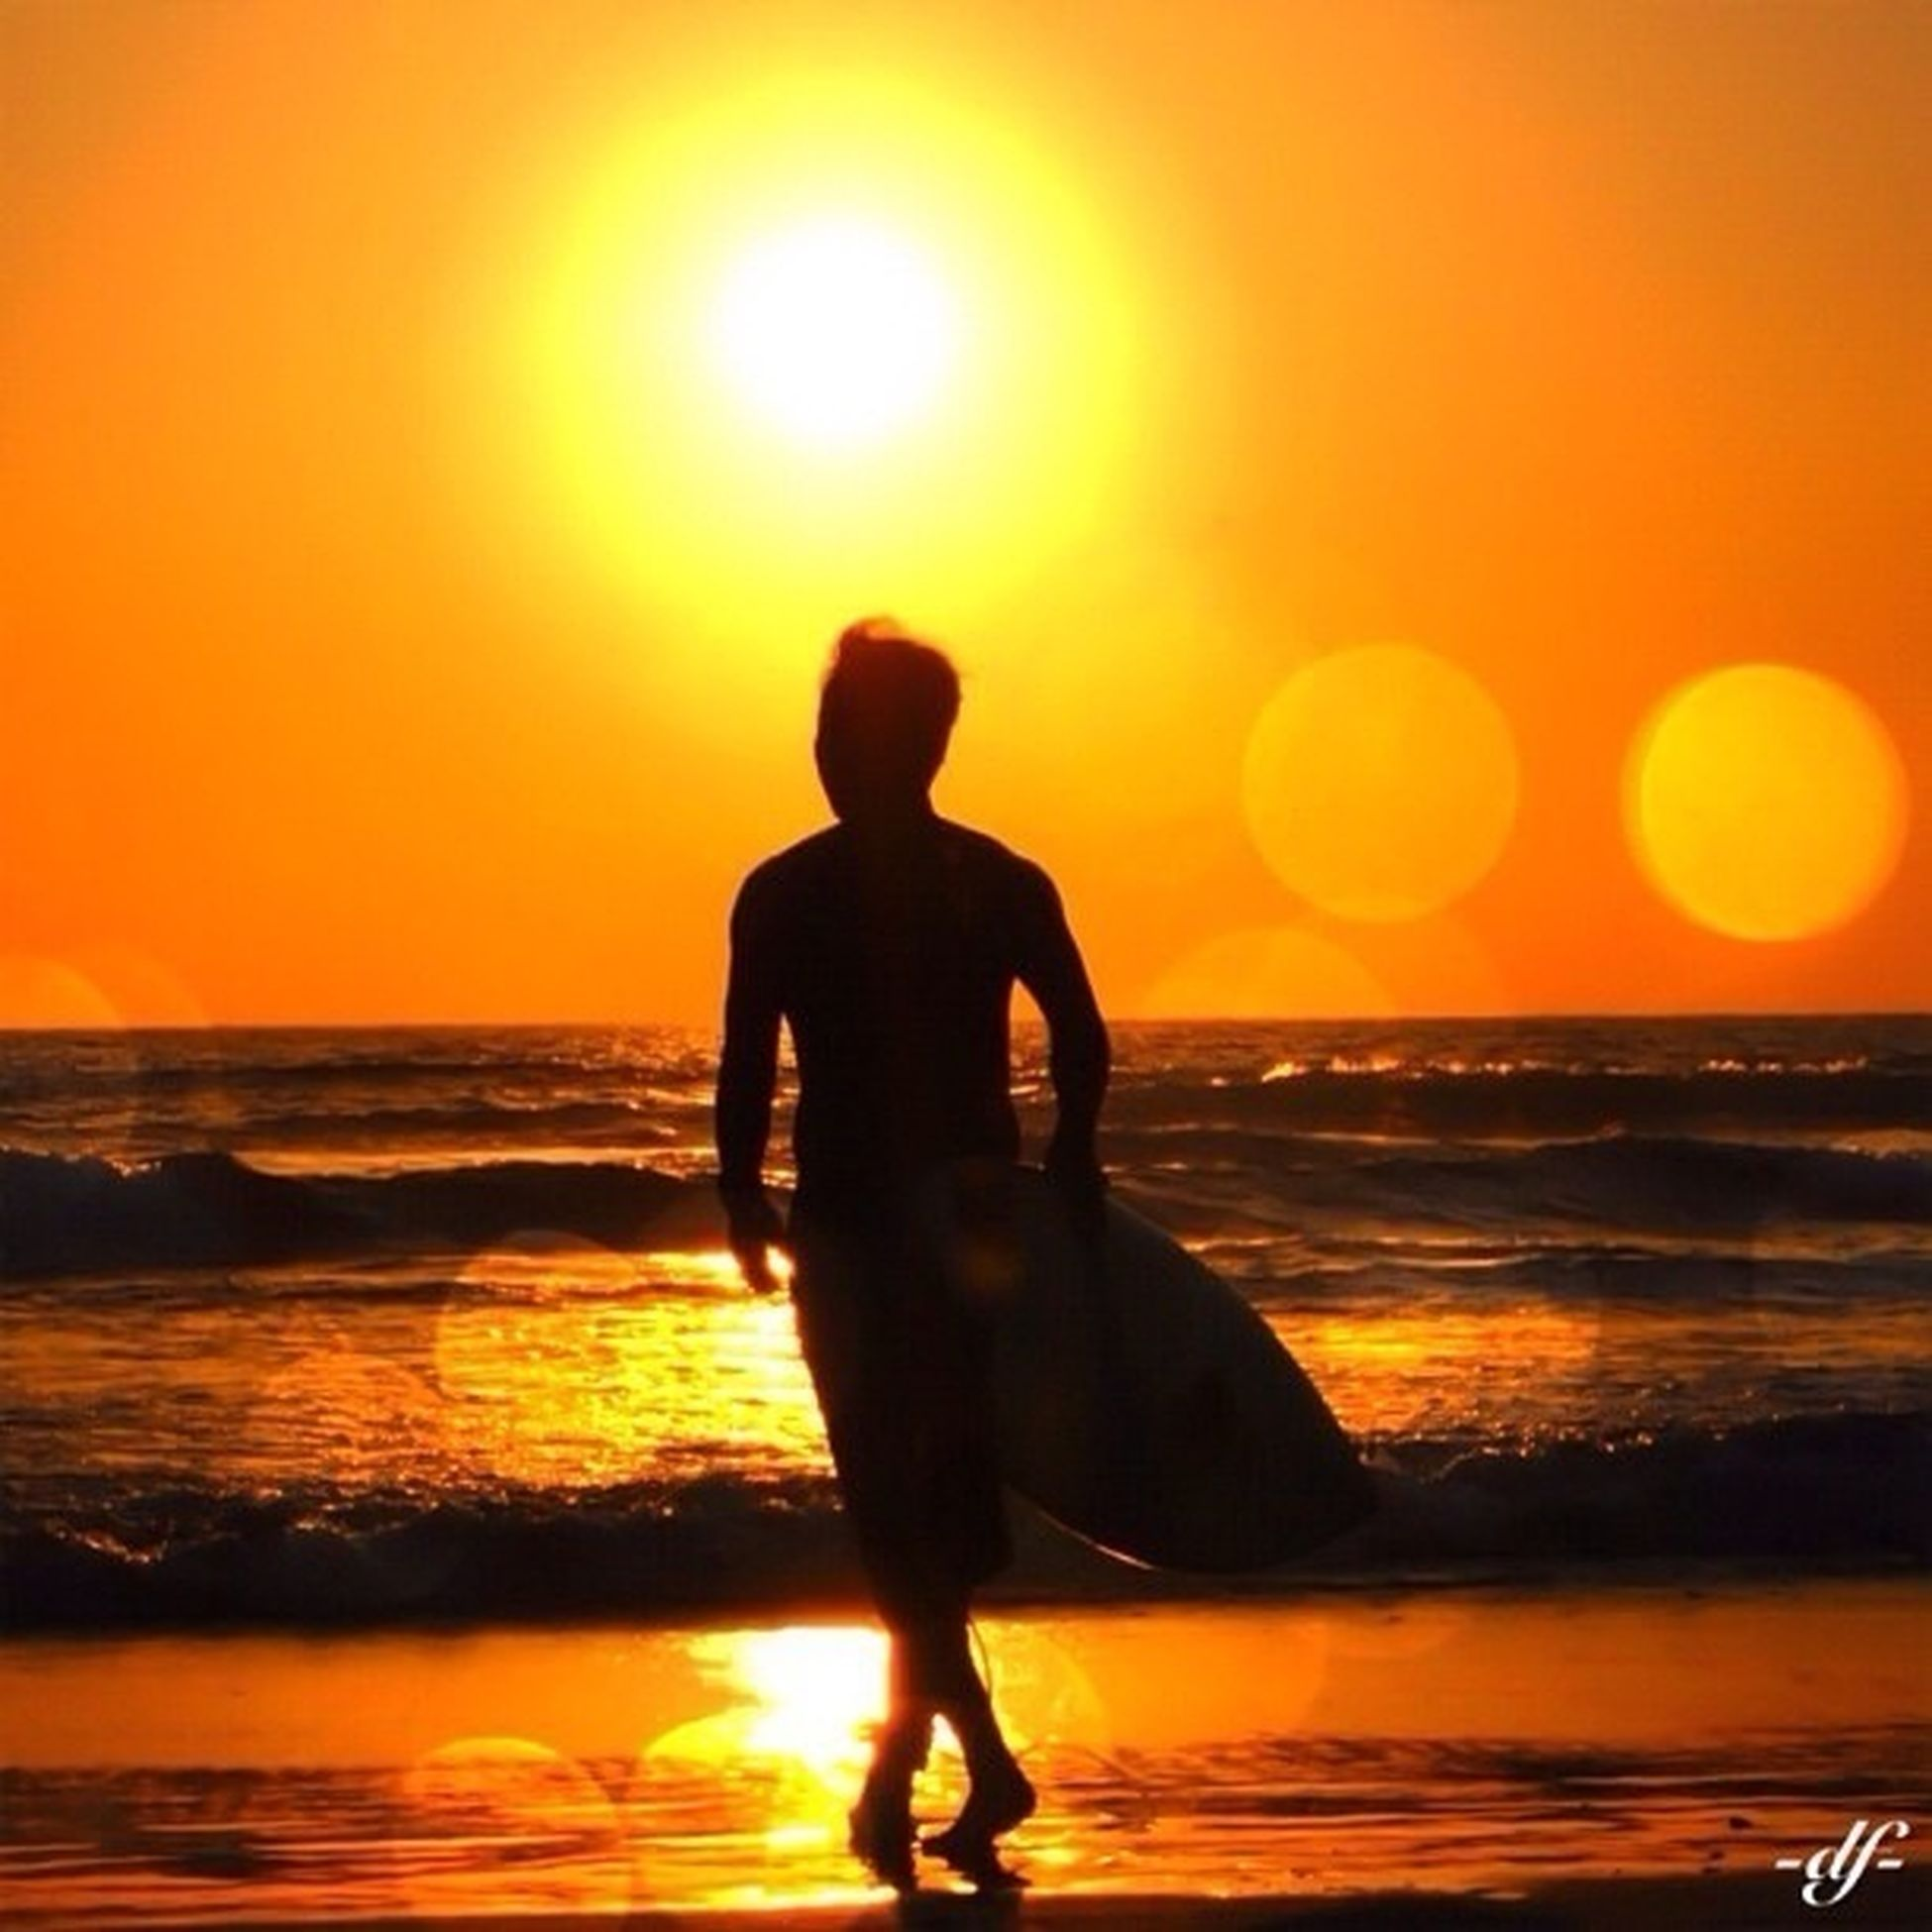 silhouette, real people, lifestyles, leisure activity, men, sunset, beach, standing, women, horizon over water, sun, full length, sea, orange color, light, getting away from it all, escapism, weekend activities, balance, leisure activity